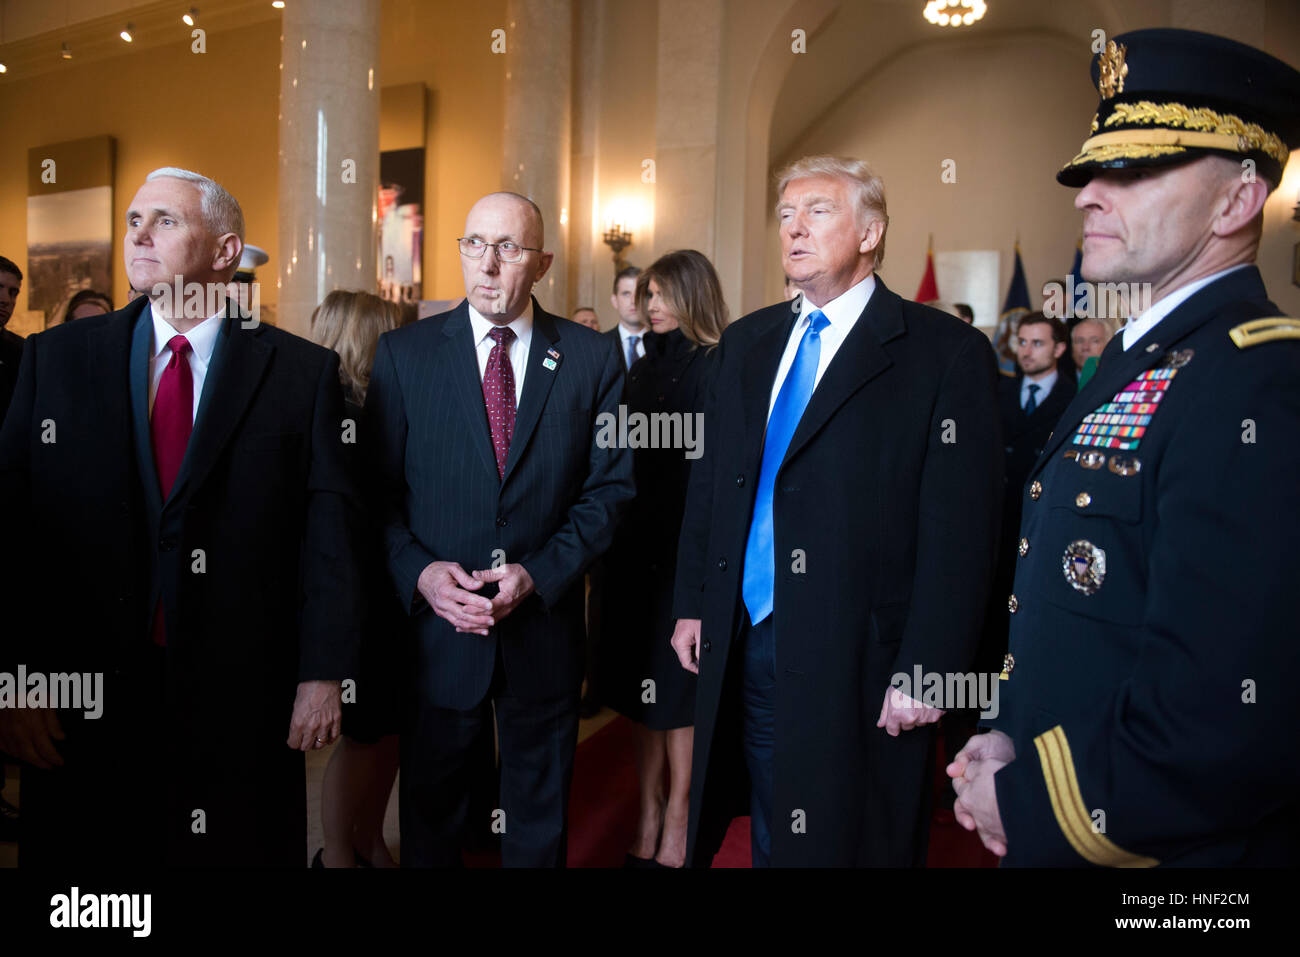 President-elect Donald Trump and Vice President-elect Mike Pence are briefed by Army Chief of Ceremonies Gary Davis - Stock Image